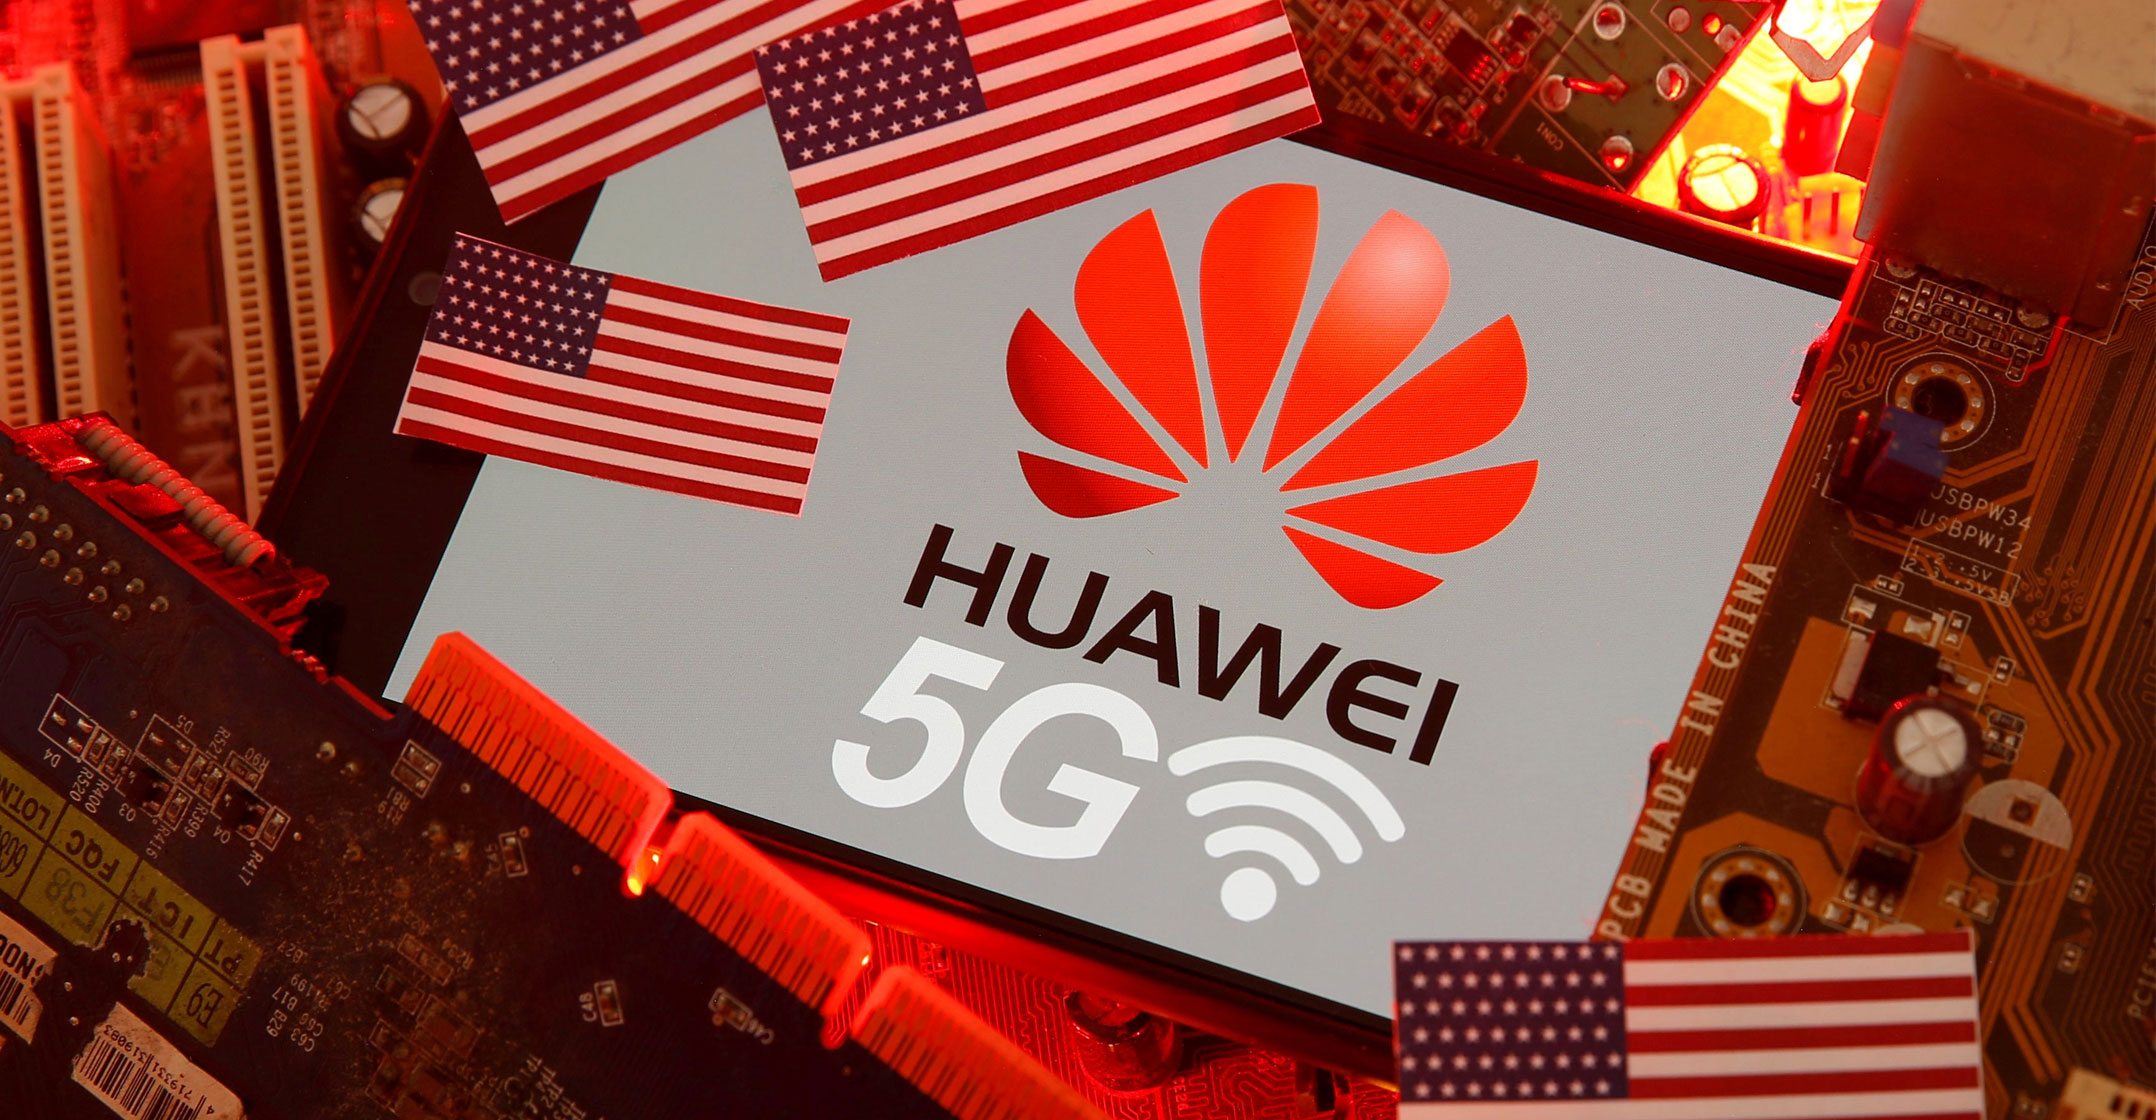 US strikes at a Huawei prize: chip juggernaut HiSilicon - TechCentral